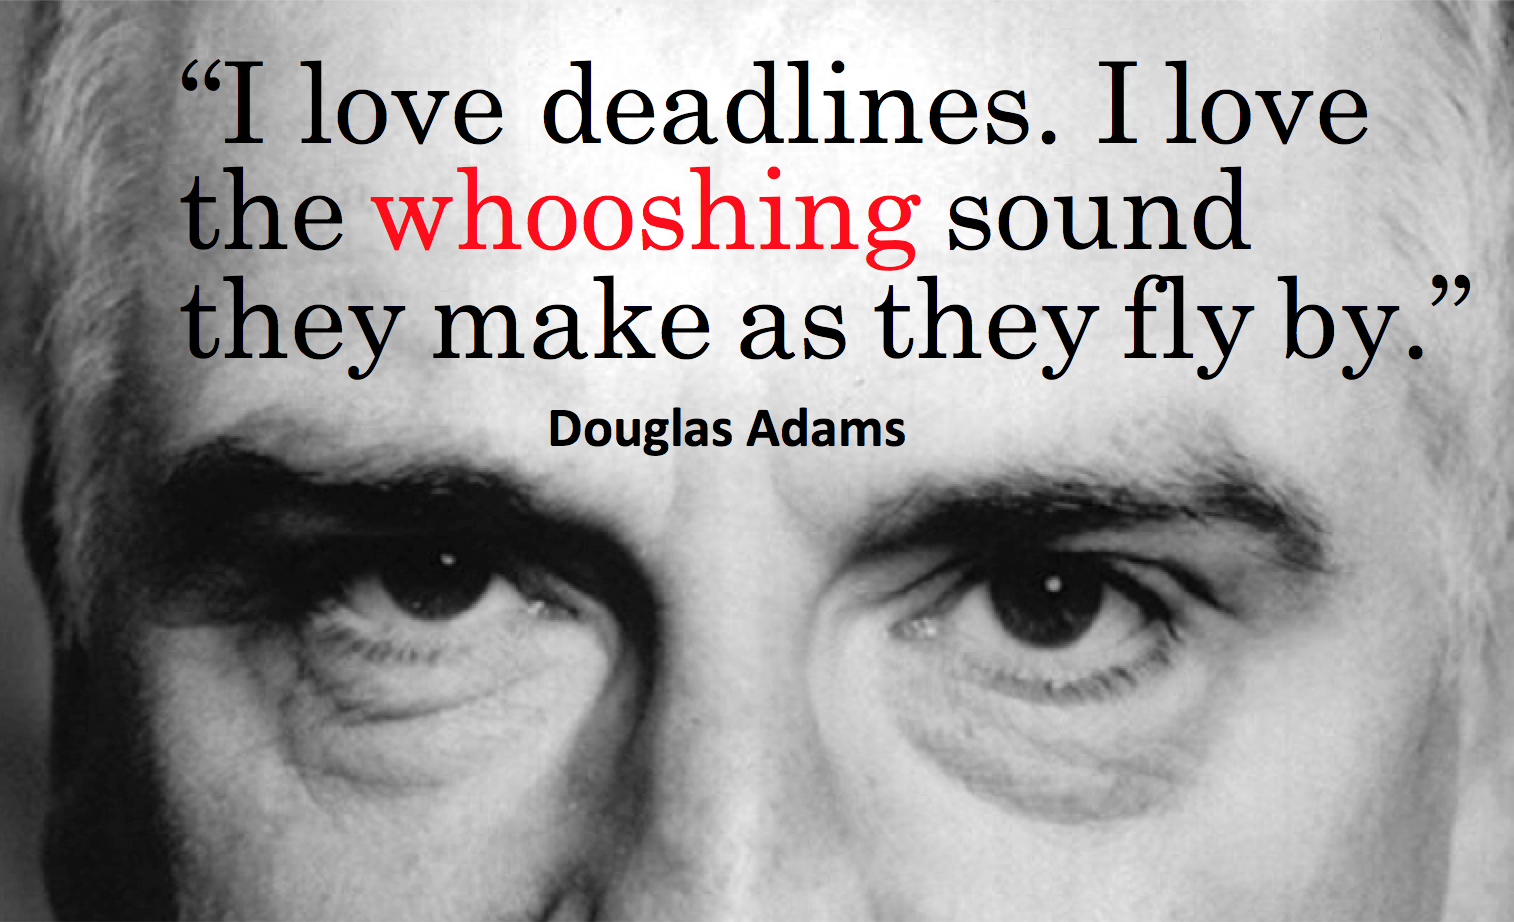 Douglas Adams: I love deadlines